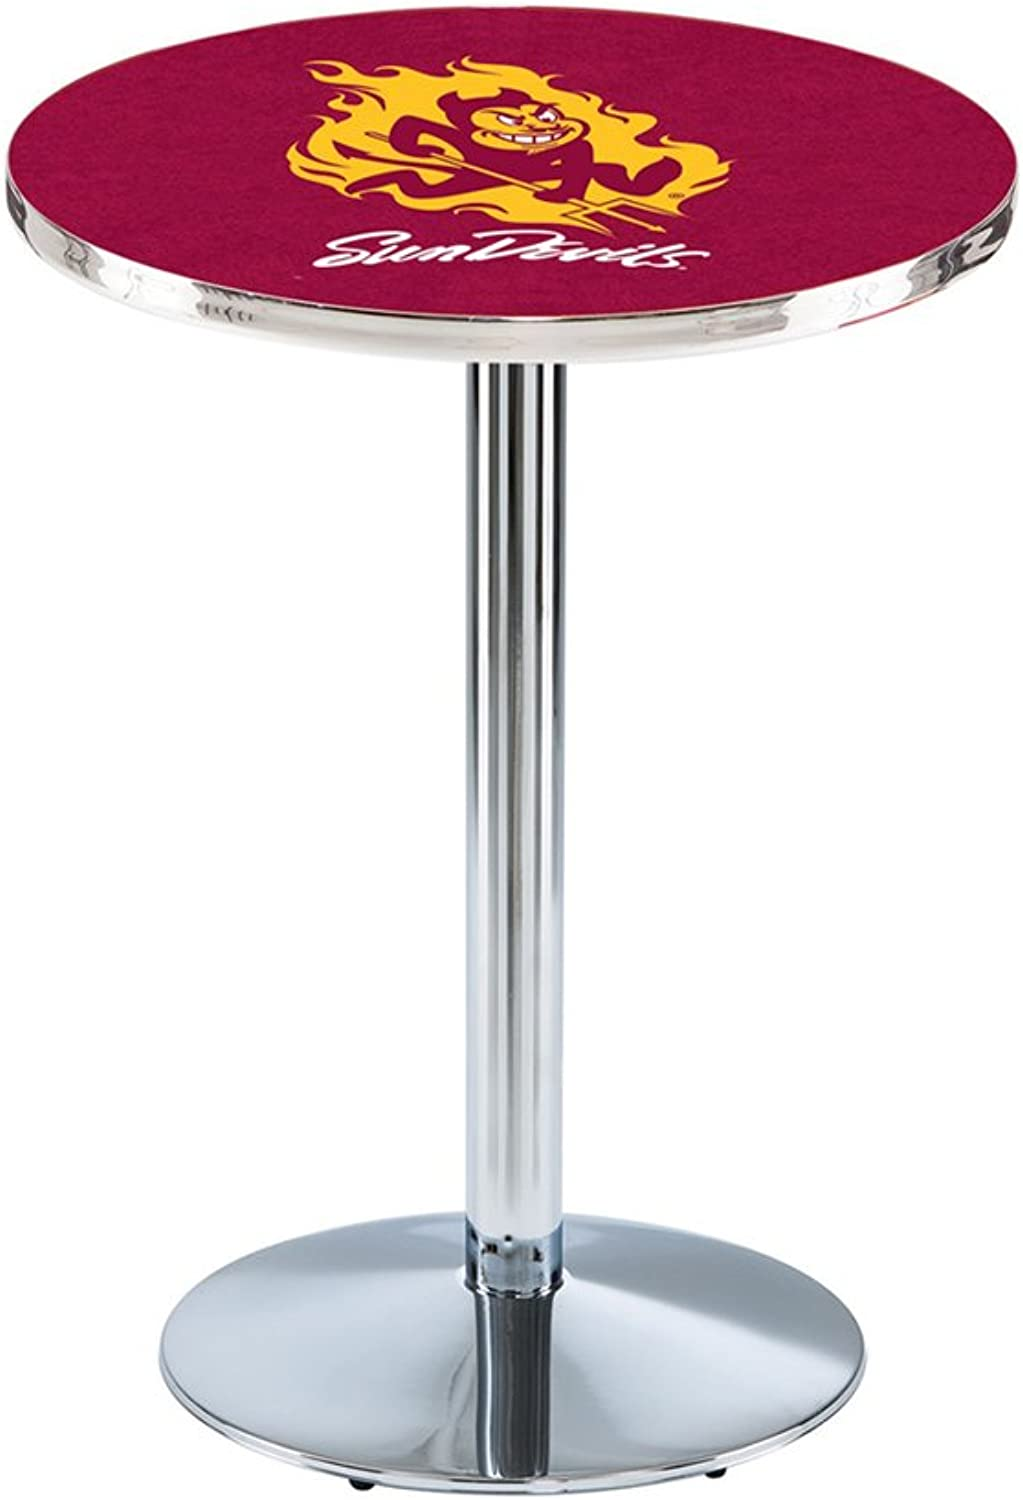 Holland Bar Stool L21436  Stainless Steel Arizona State Pub Table with Sparky Logo